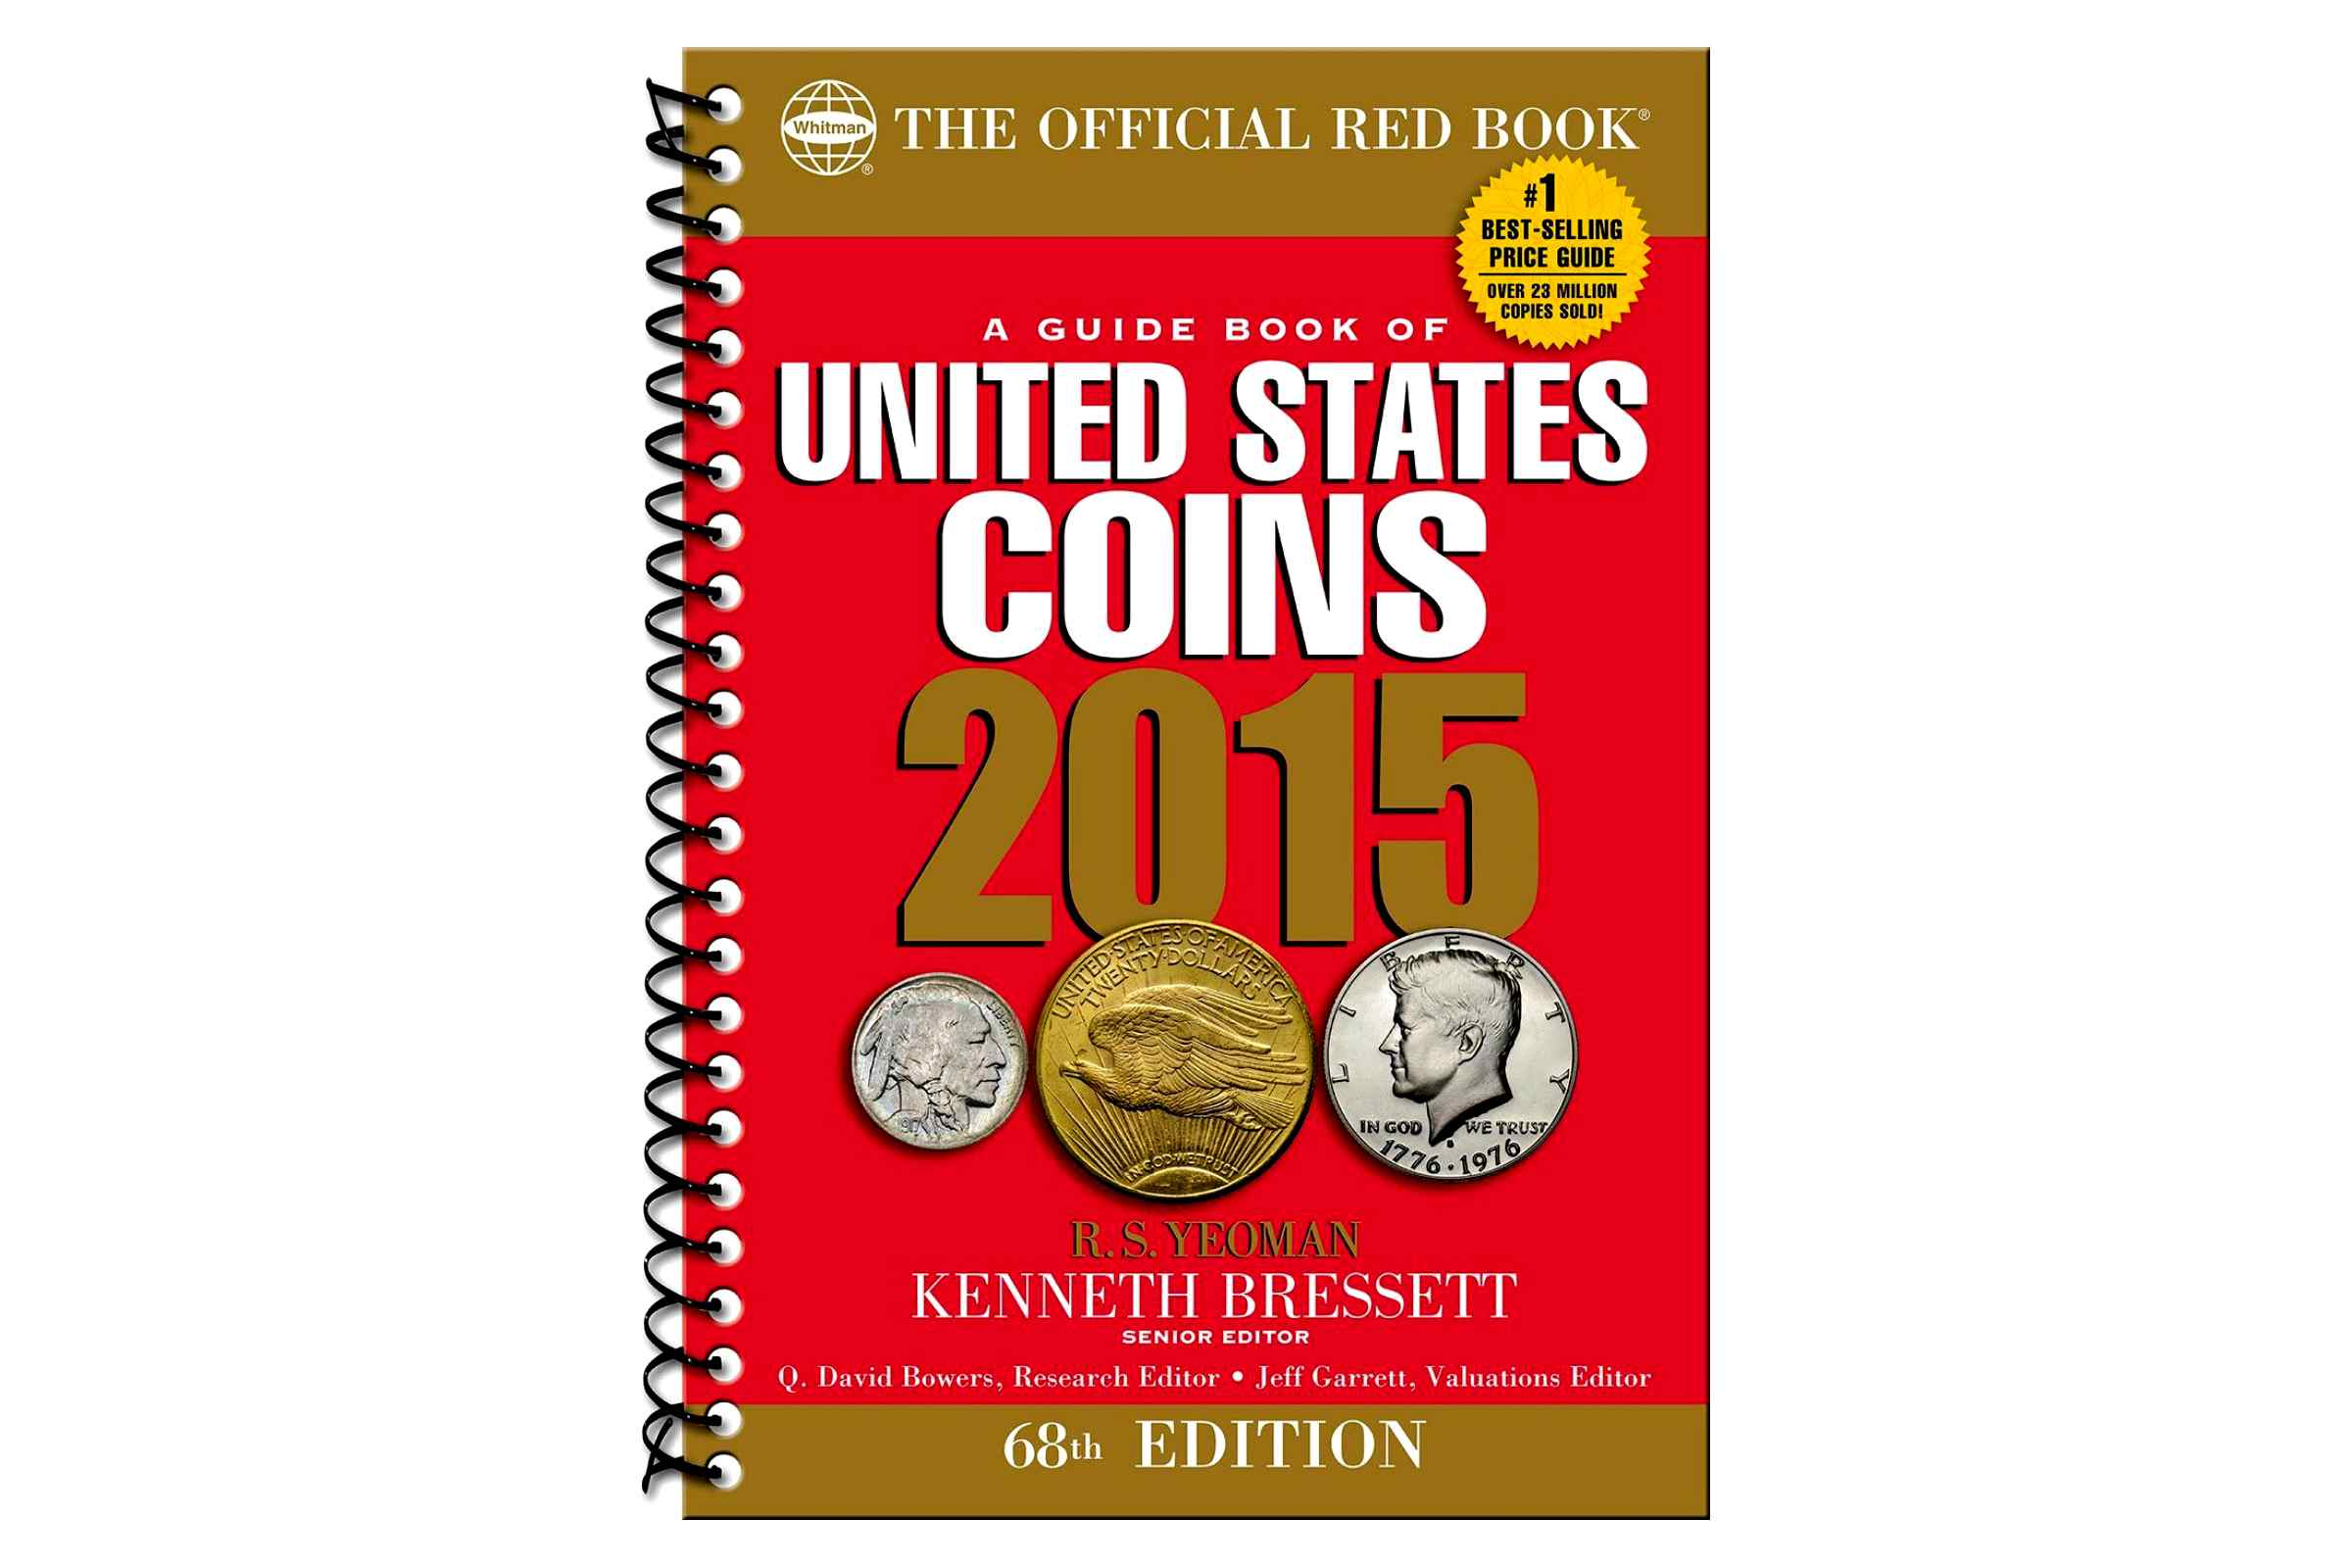 A Guide Book of United States Coins 2015: The Official Red Book Cover